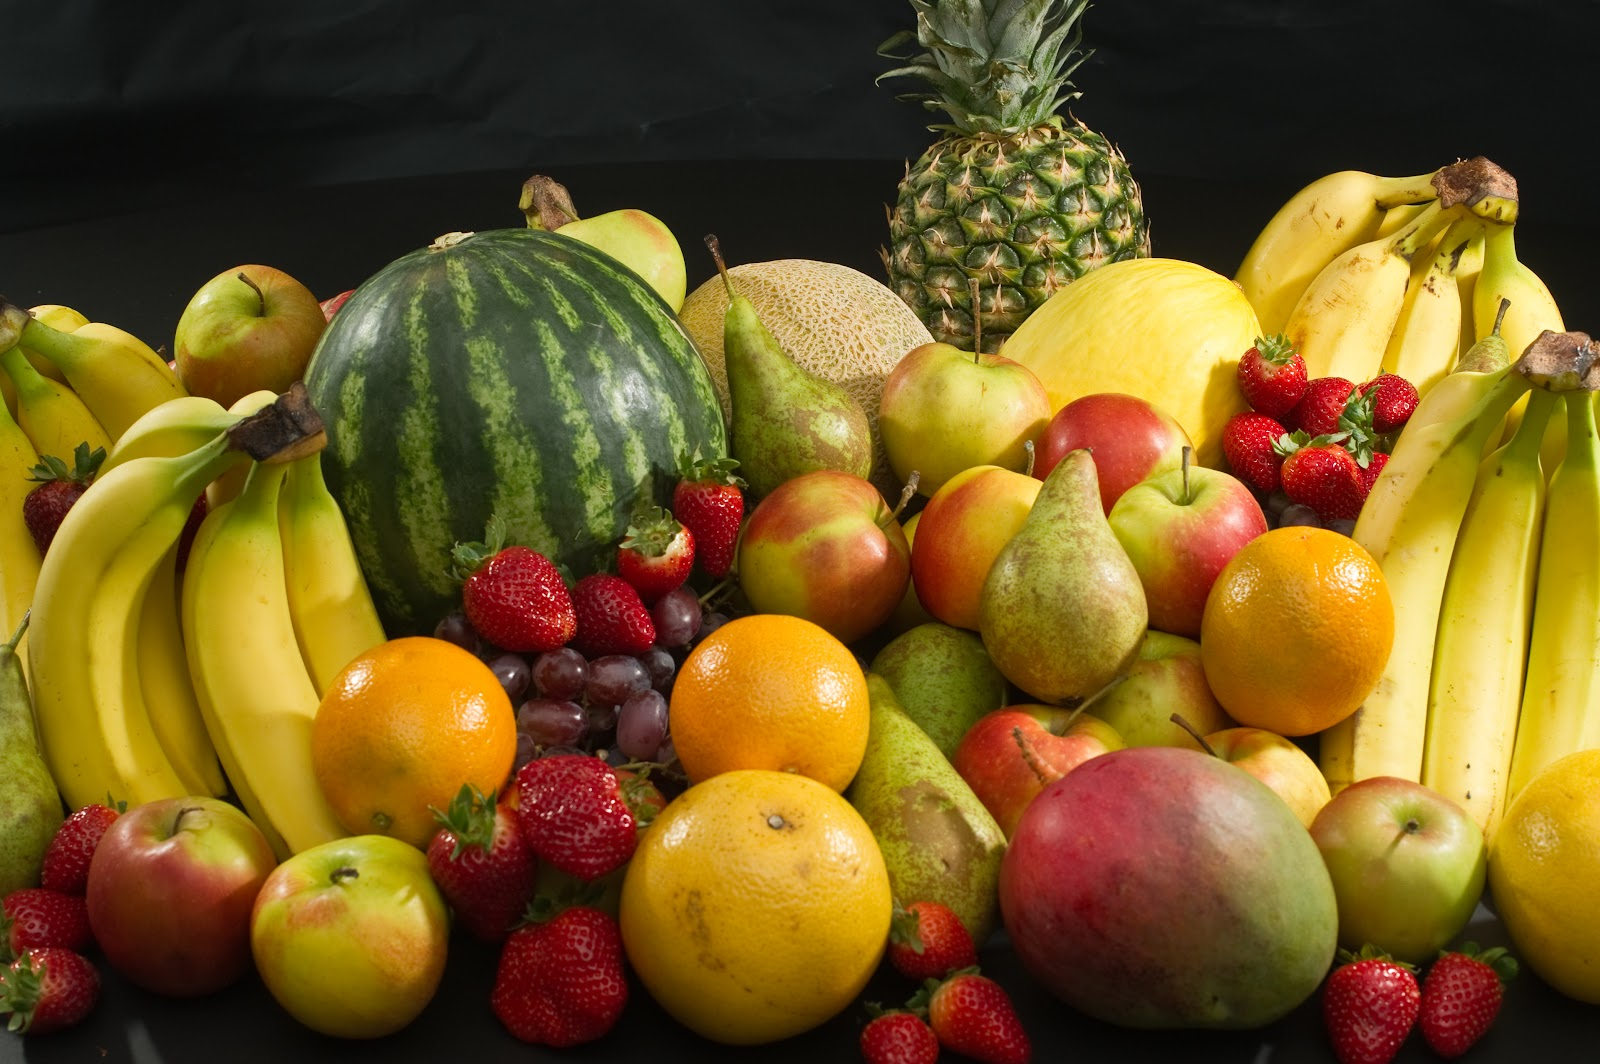 Culinary_fruits_front_view-2.jpg